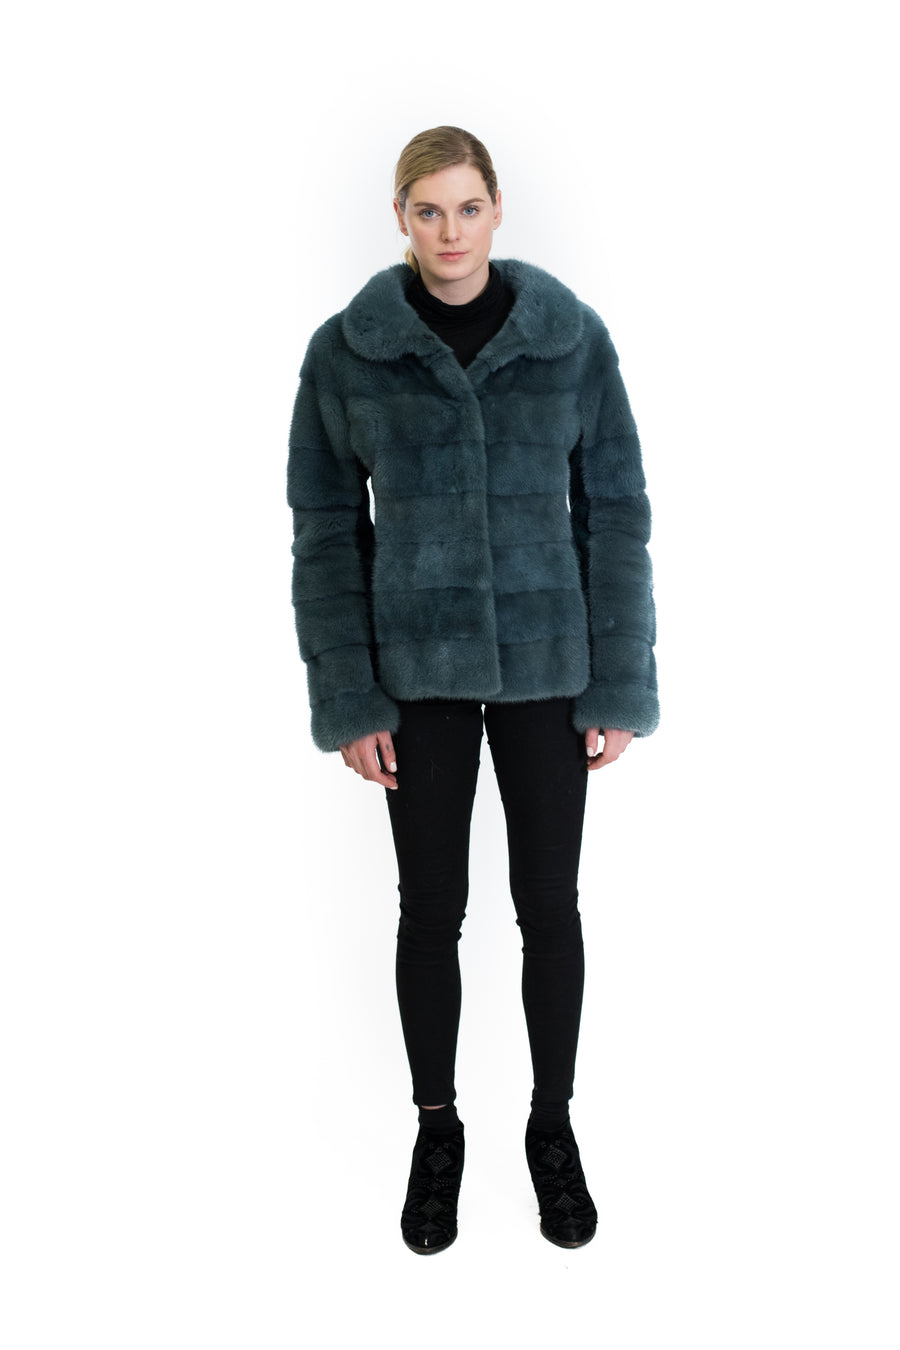 Mink Jacket with Shearling